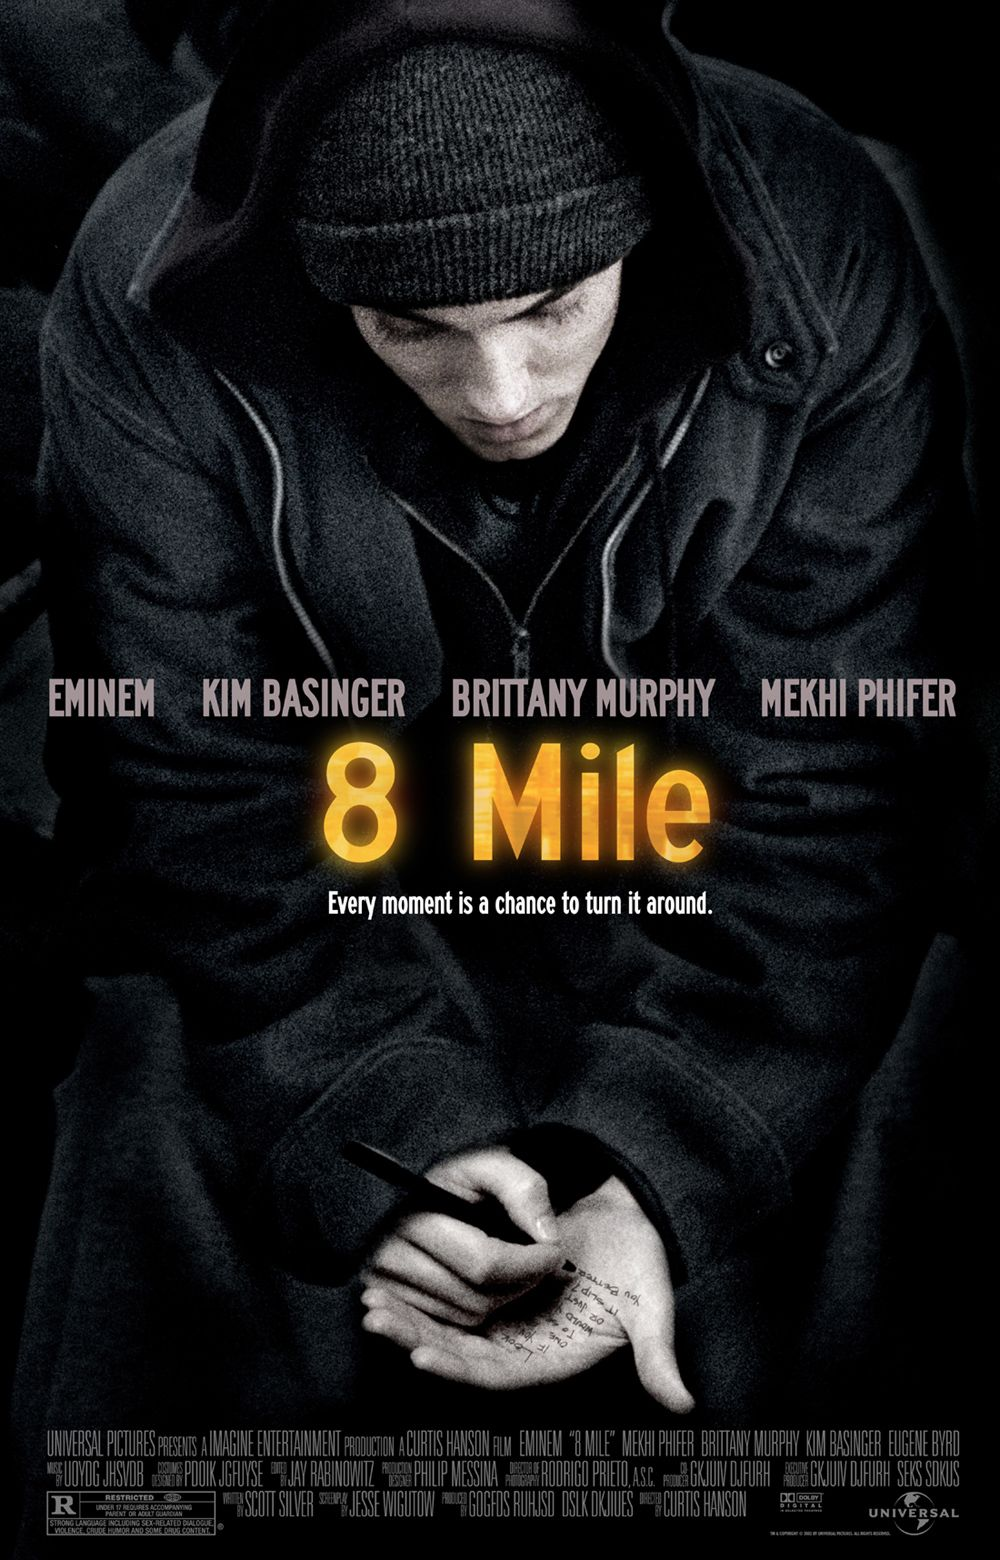 miles from nowhere movie 2002